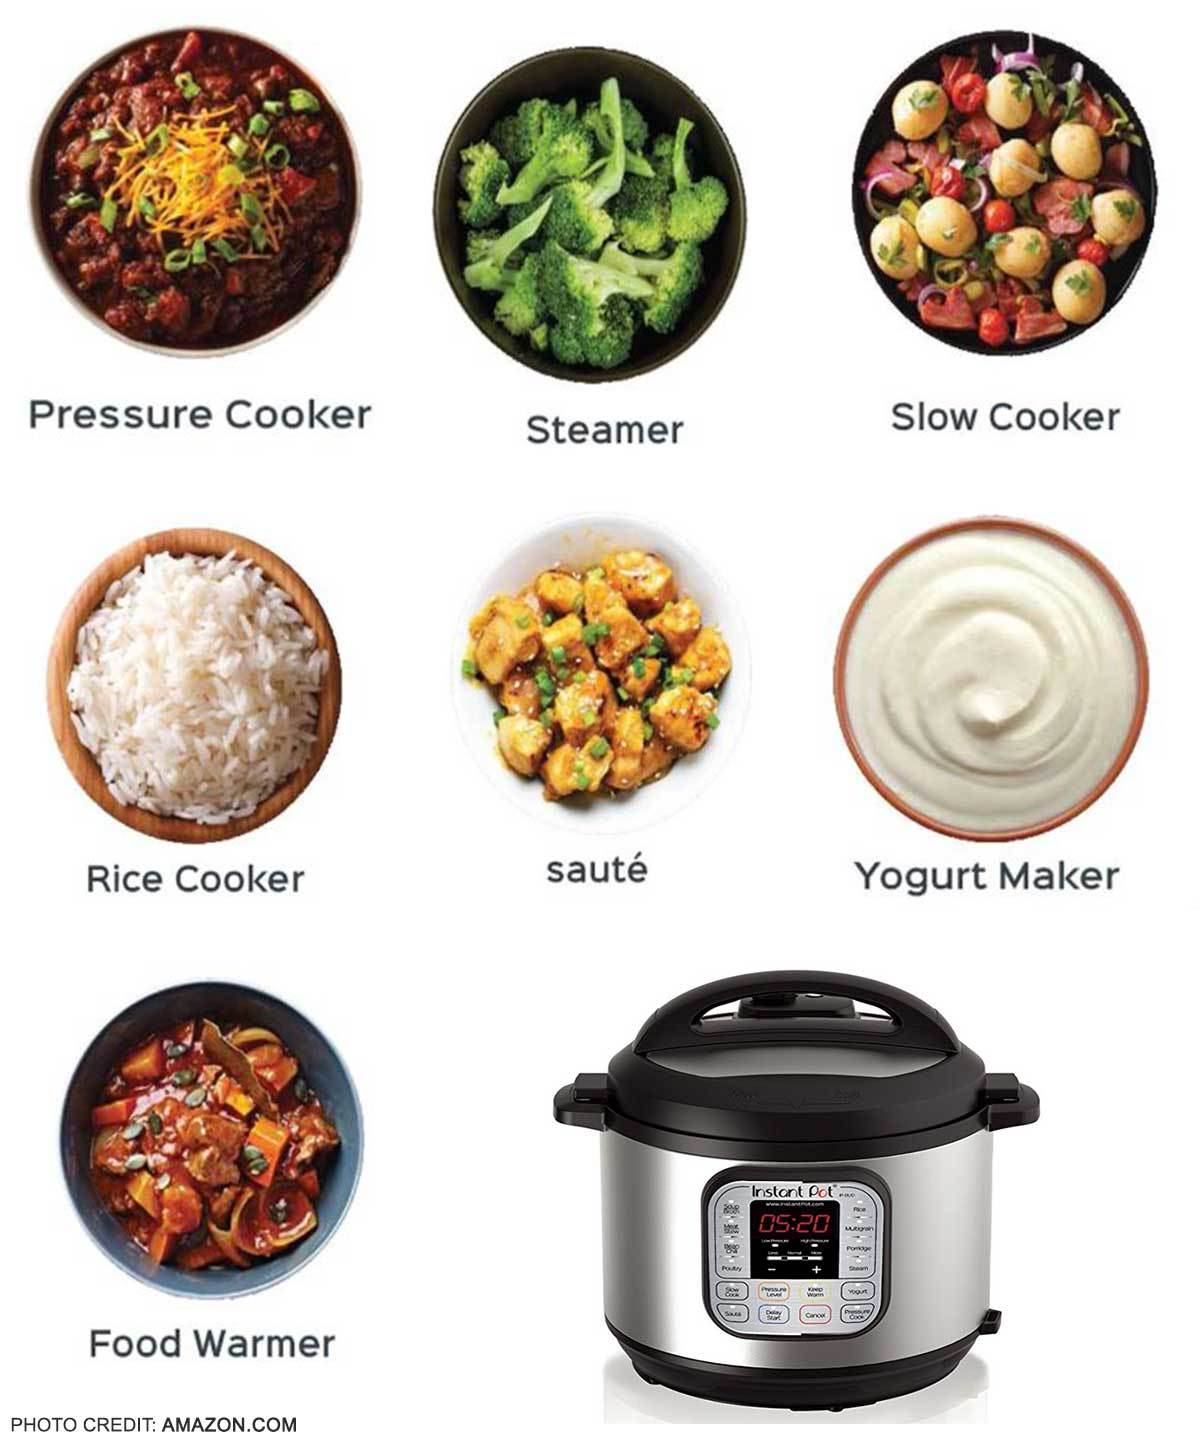 Instant Pot with food examples featuring its 7 functions: pressure cooker, steamer, slow cooker, rice cooker, sauté, yogurt maker, food warmer photo